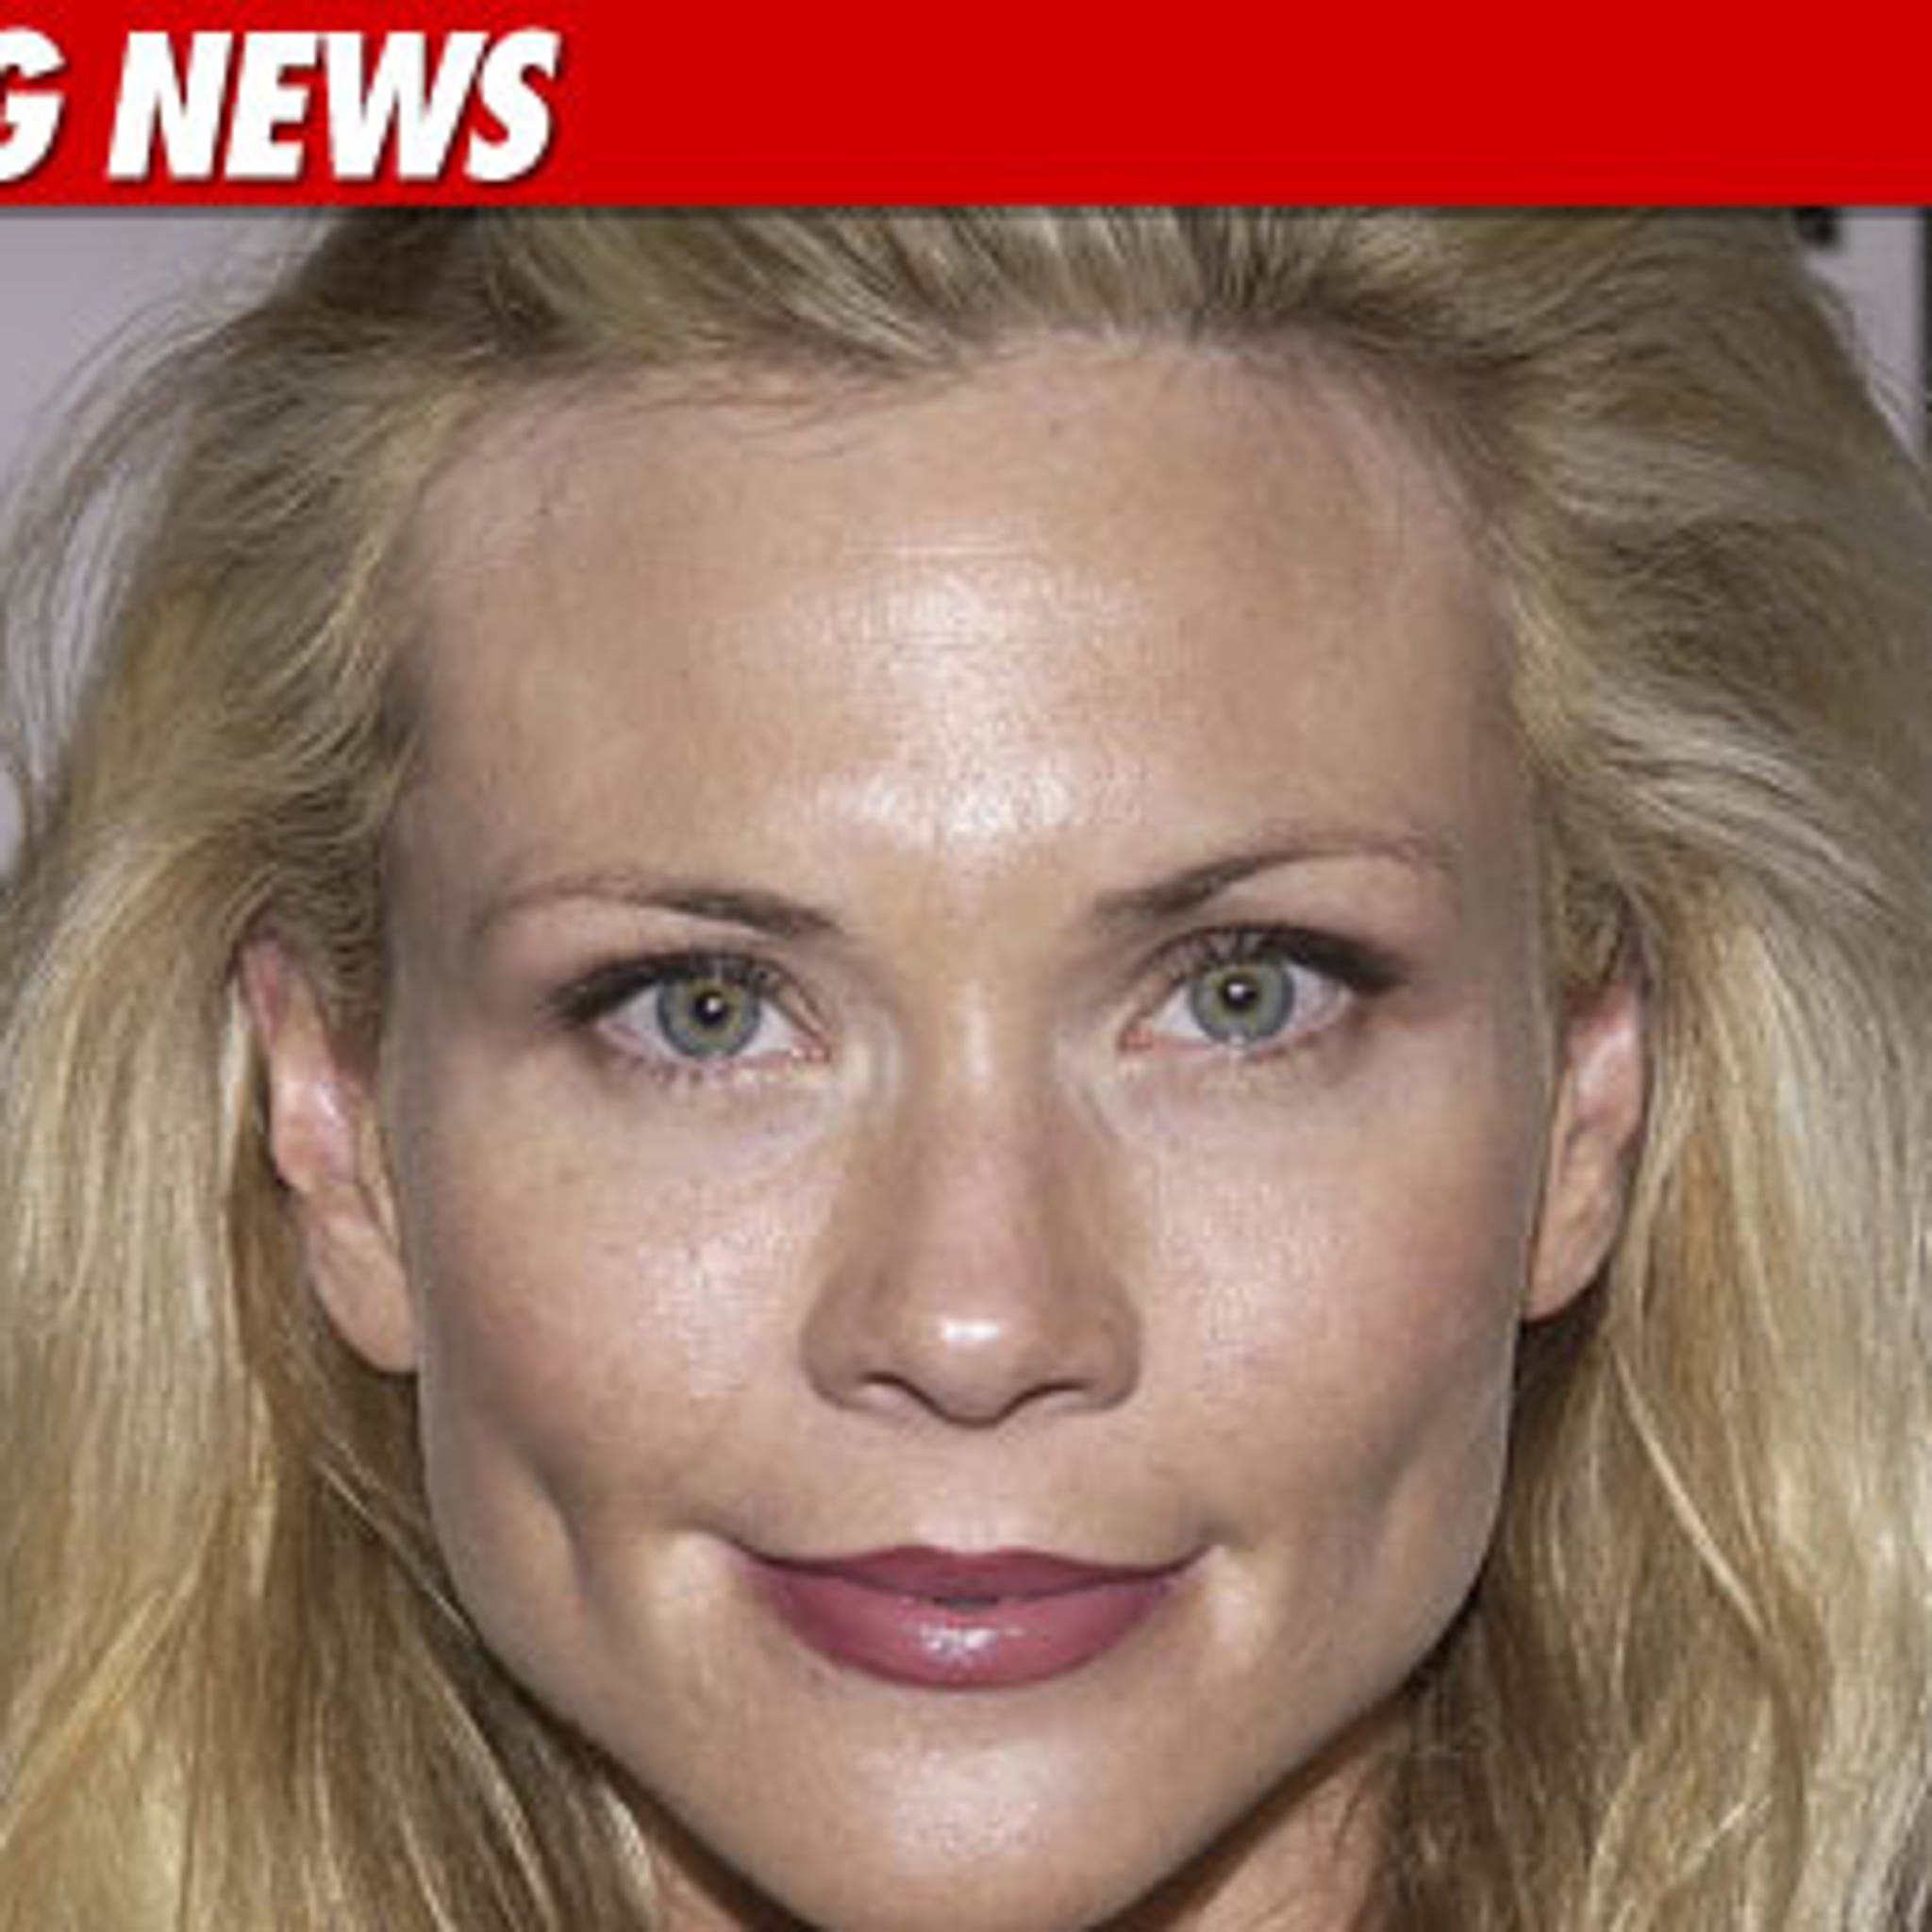 Amy Locane Melrose Place Pictures melrose place' star charged in drunk driving death